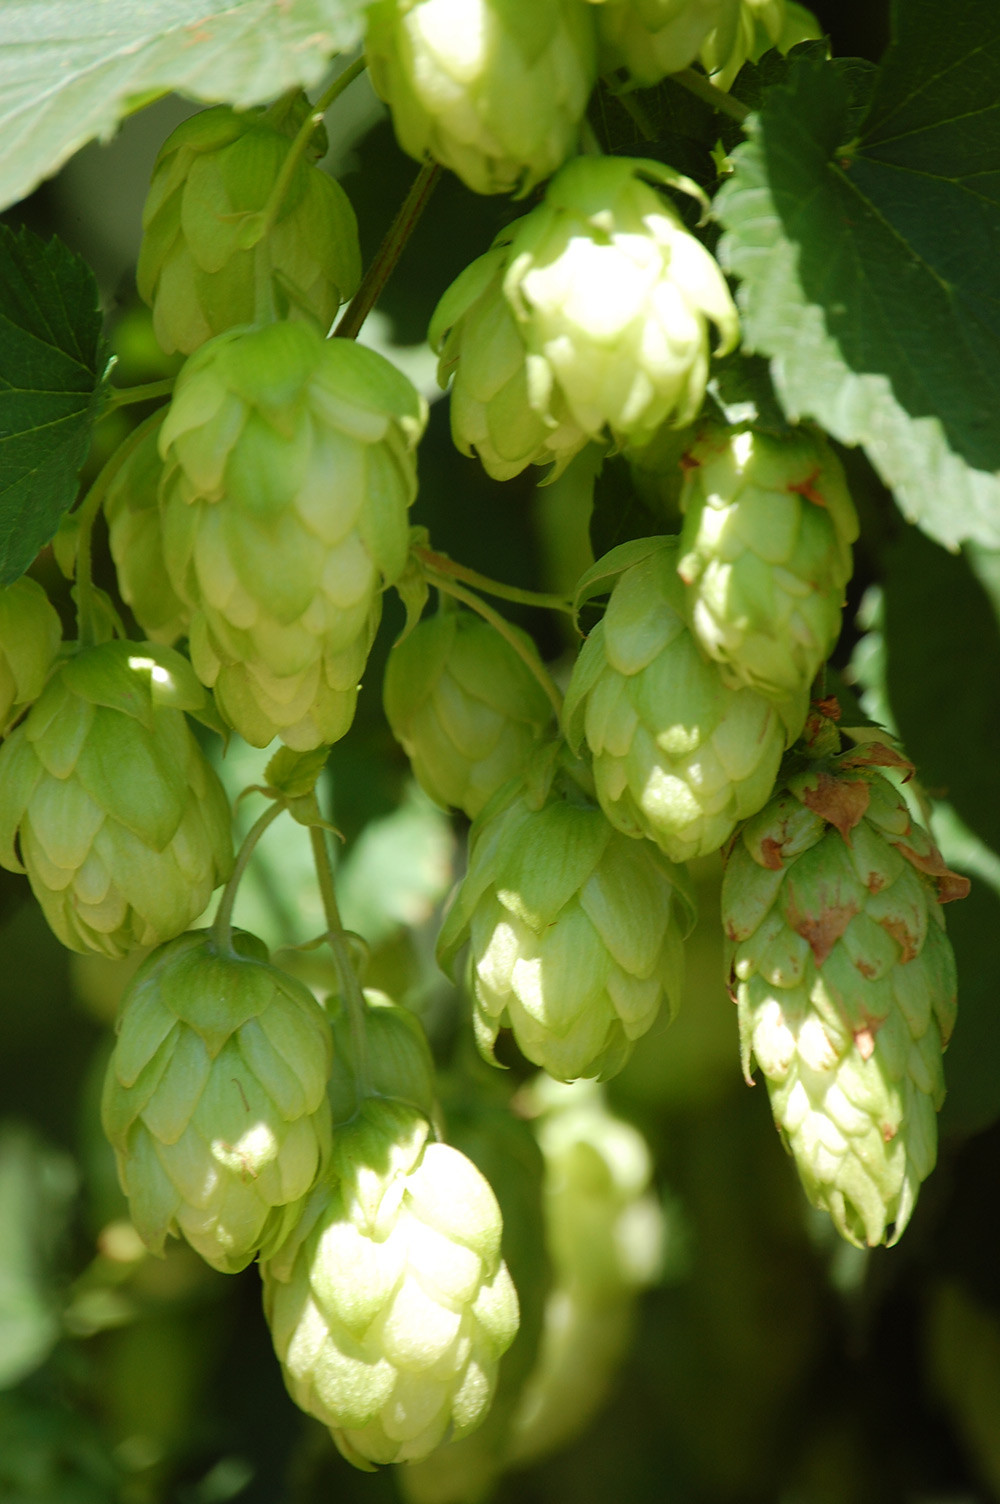 The hop cones are soaking in the warm weather and getting bigger every day.